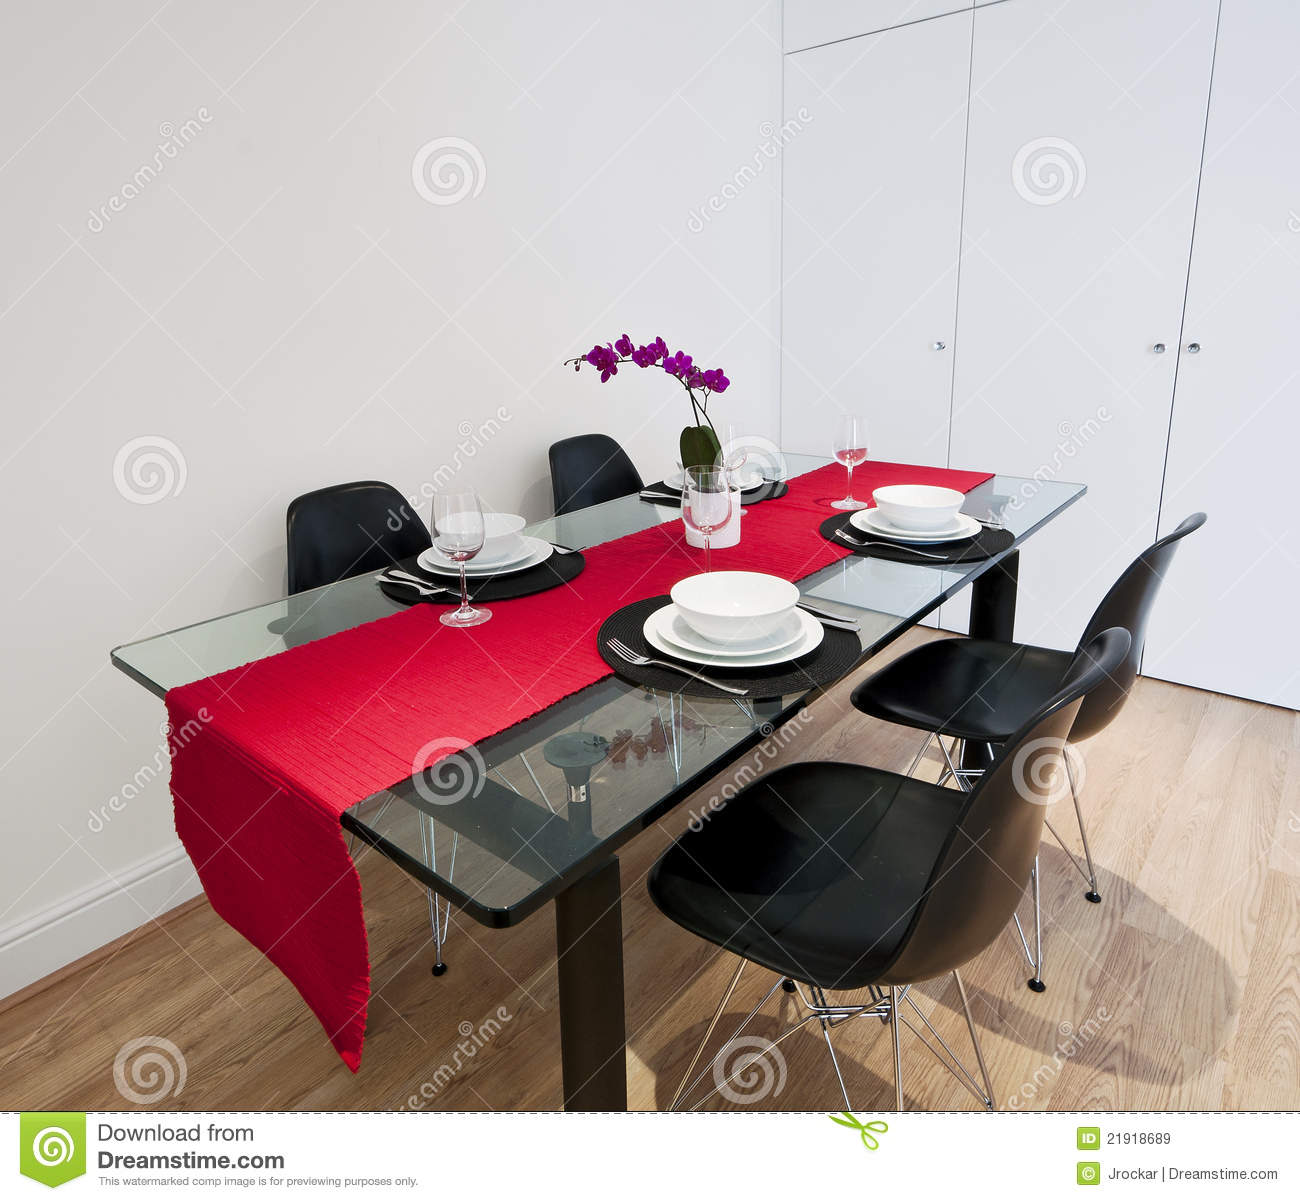 home interior design vector with Royalty Free Stock Images Dining Table Red Cloth Image21918689 on Royalty Free Stock Photos Drawing Room Image13511178 additionally Creative Wallpapers additionally Vector Window Pink Shutters Transparent Curtains 627444149 moreover 3710 0 furthermore Stock Images Kitchen Stone Fireplace Image13028824.